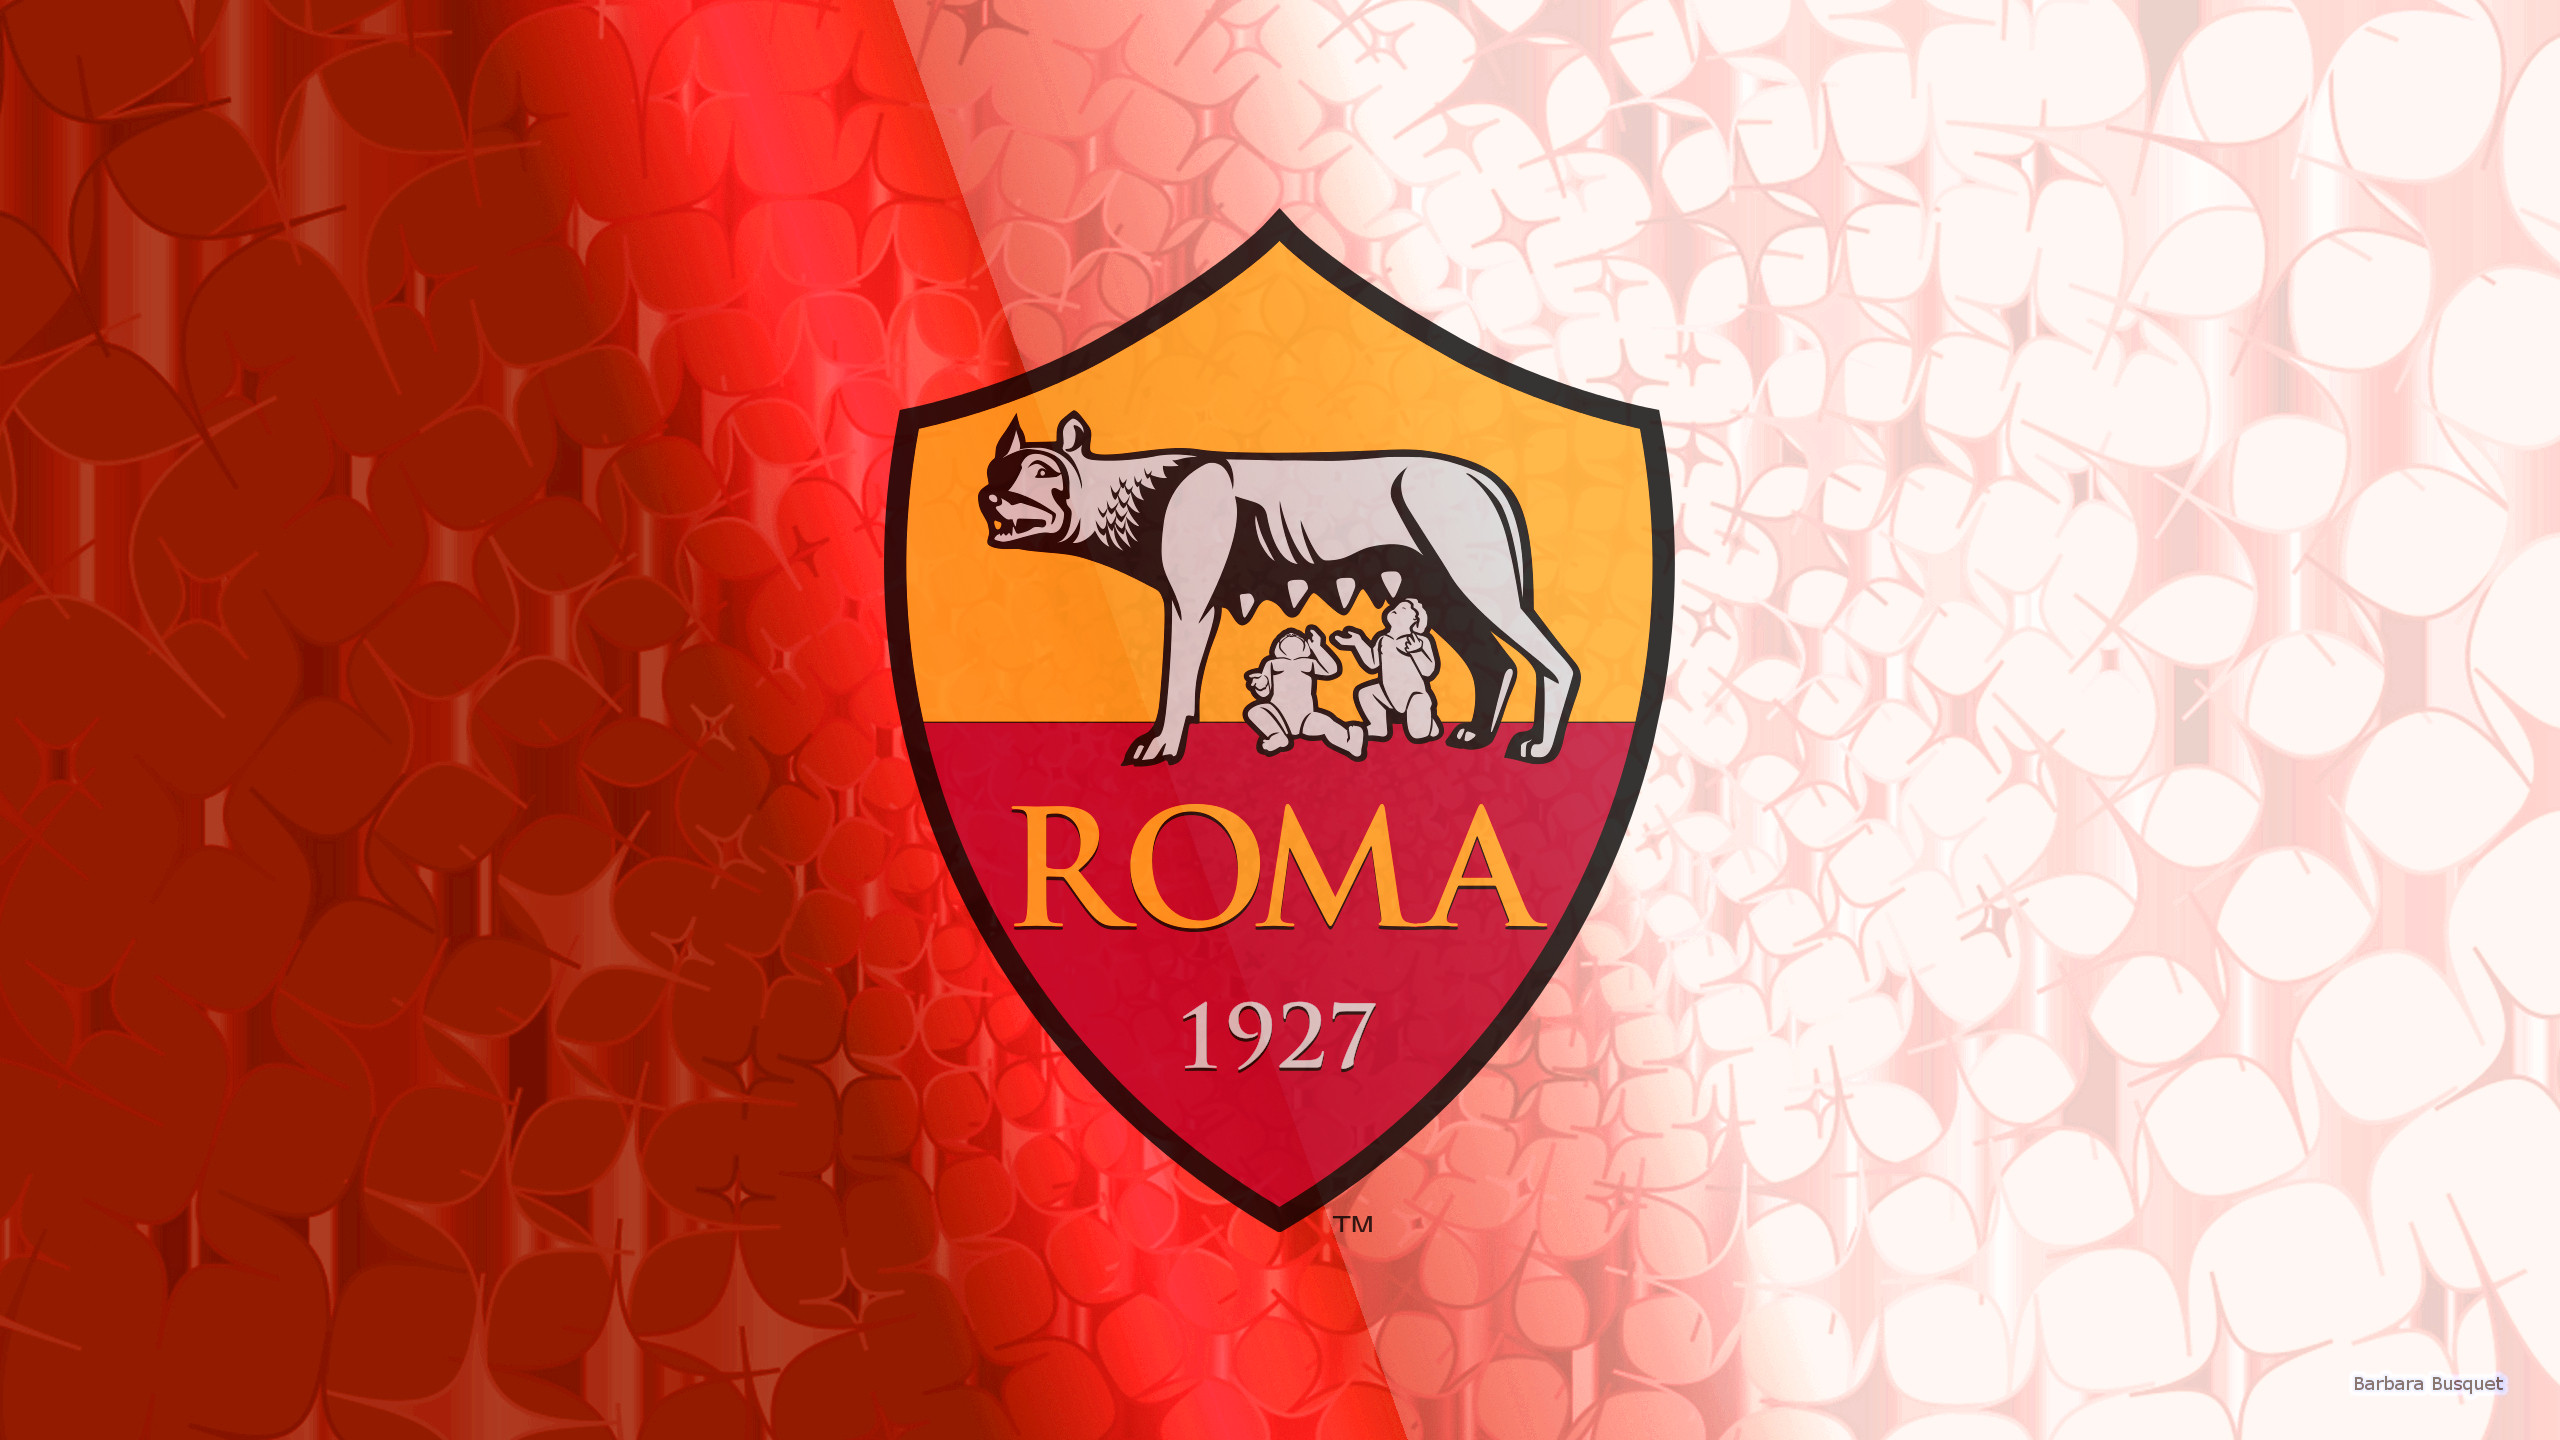 Orange Fall Wallpaper A S Roma Football Wallpapers Barbaras Hd Wallpapers